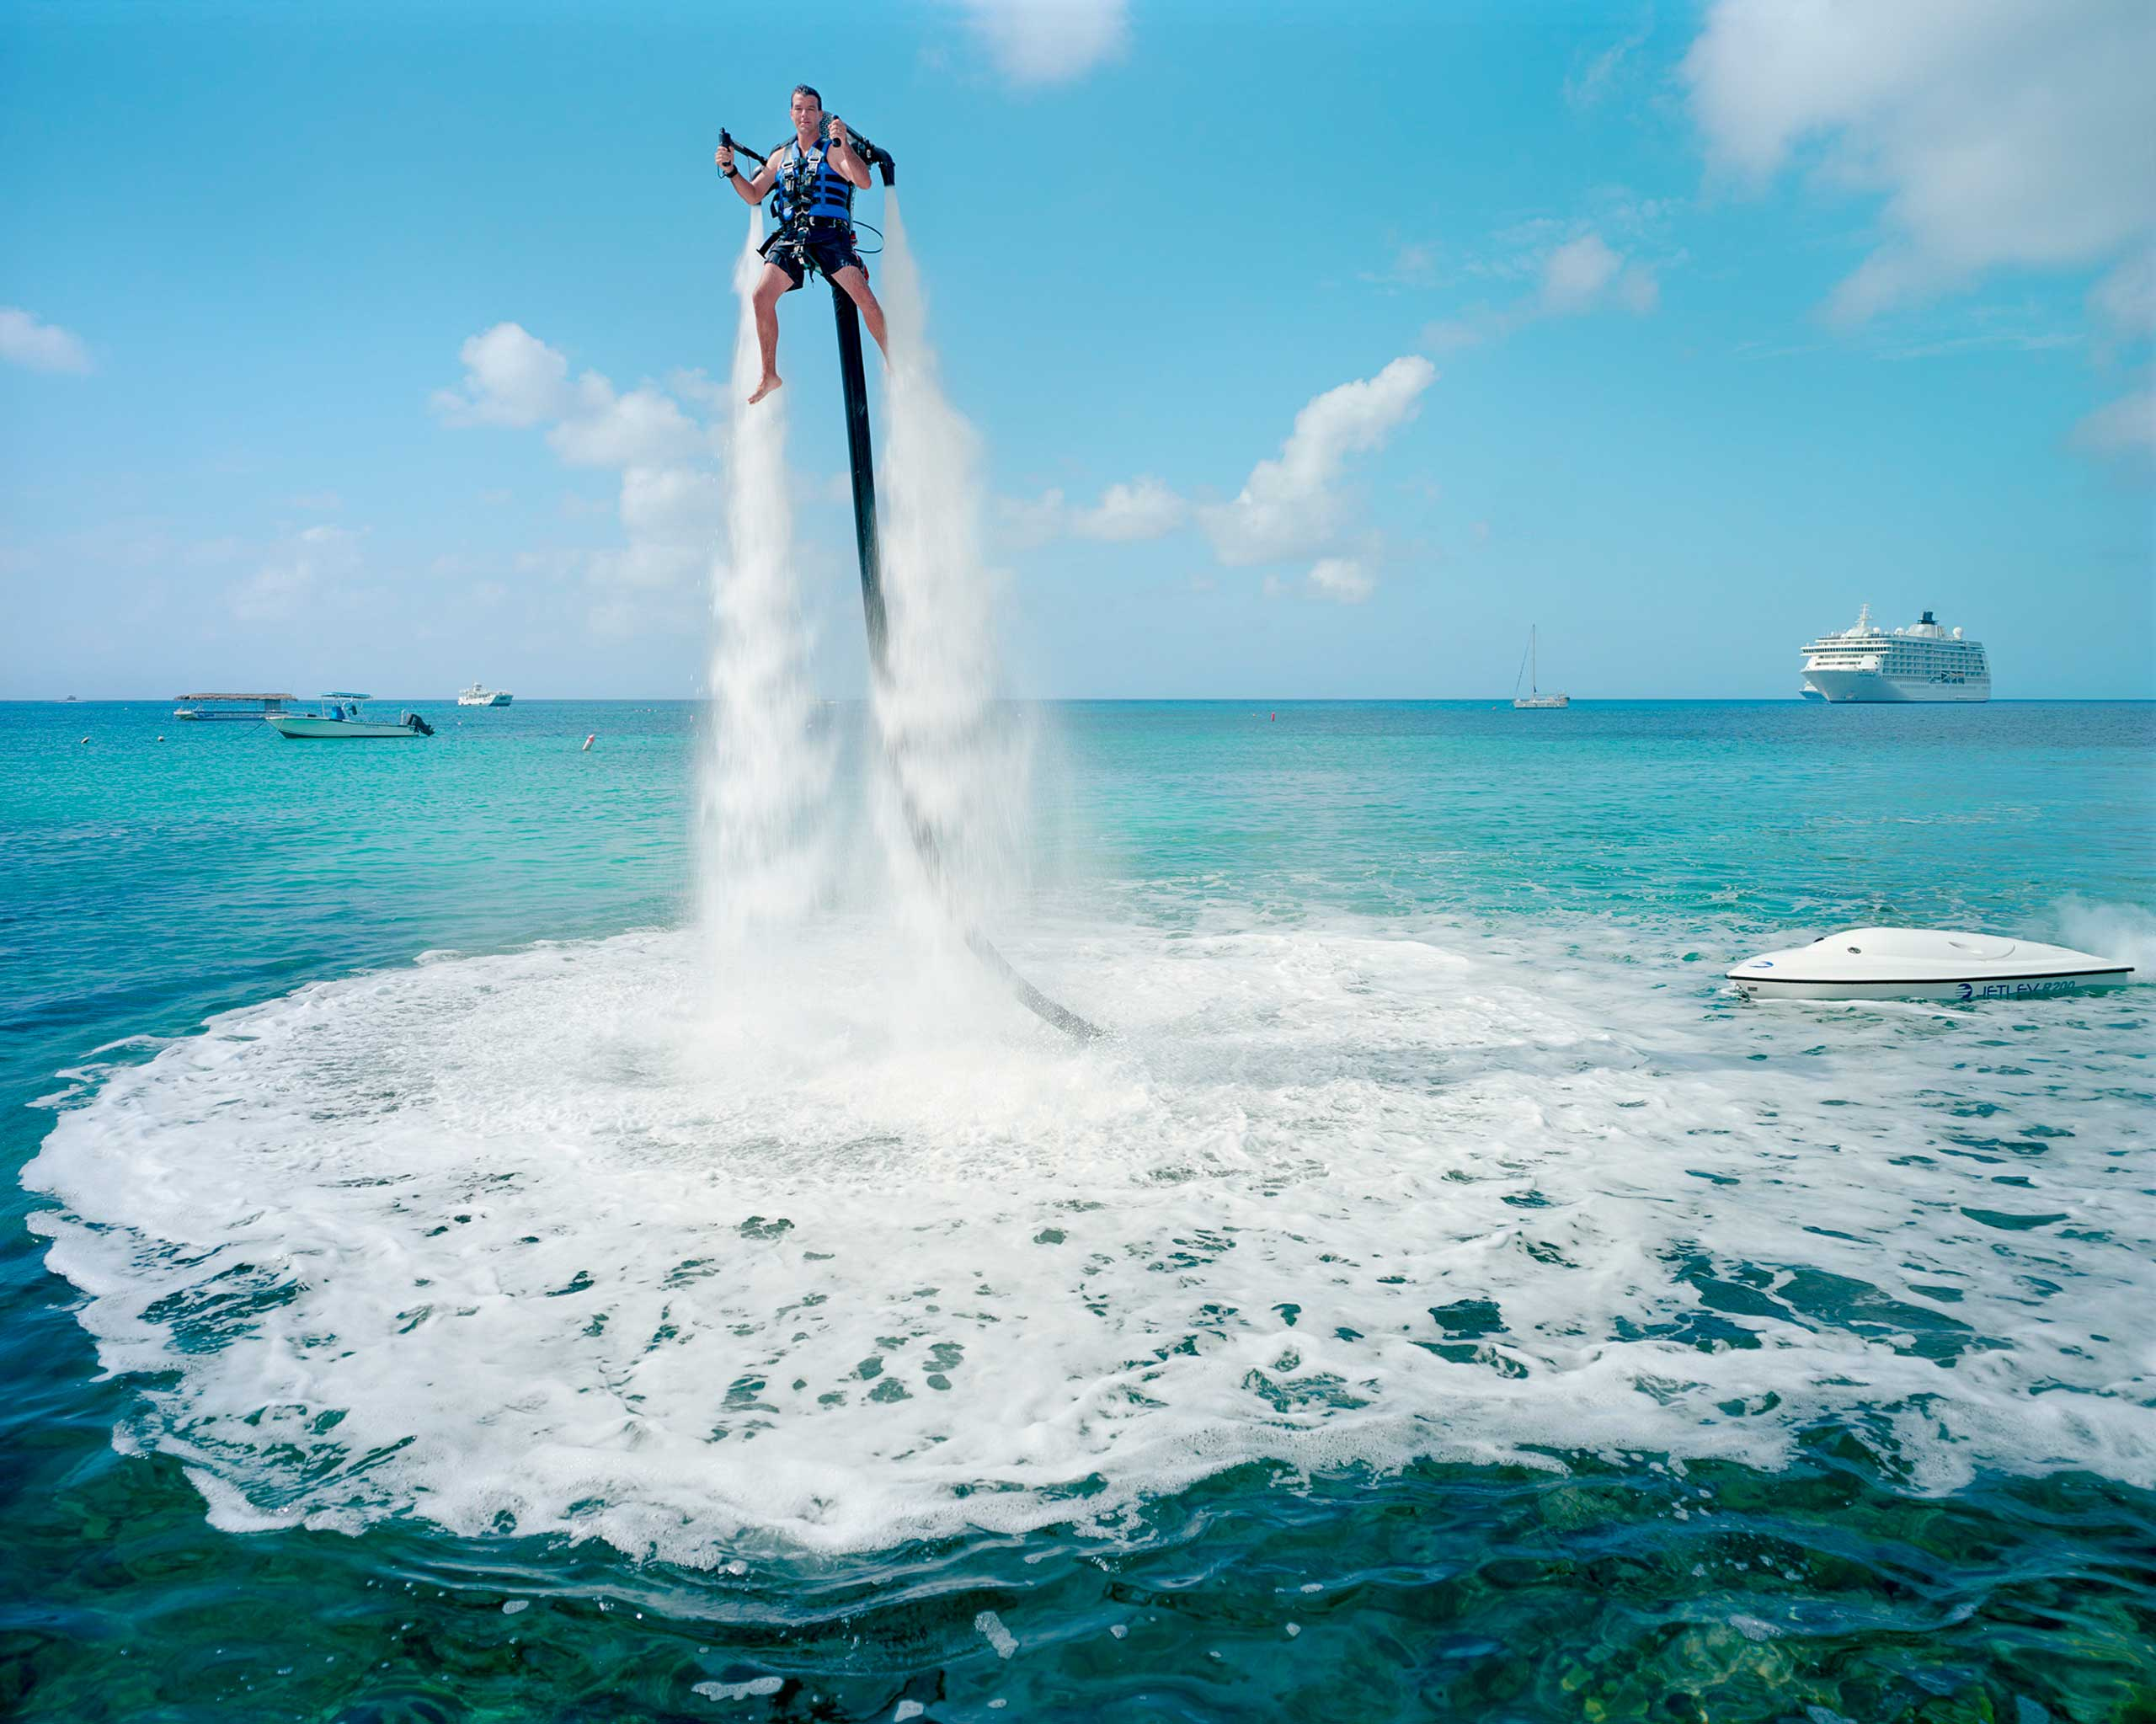 "An employee of ""Jetpack Cayman"" demonstrates this new watersport, now available on the island. A 2000cc motor pumps water up through the Jetpack, propelling the client out of the sea ($359 for a 30-minute session). Mike Thalasinos, the owner of the company, remarks, ""The Jetpack is zero gravity, the Cayman are zero taxes, we are in the right place!"" Grand Cayman."